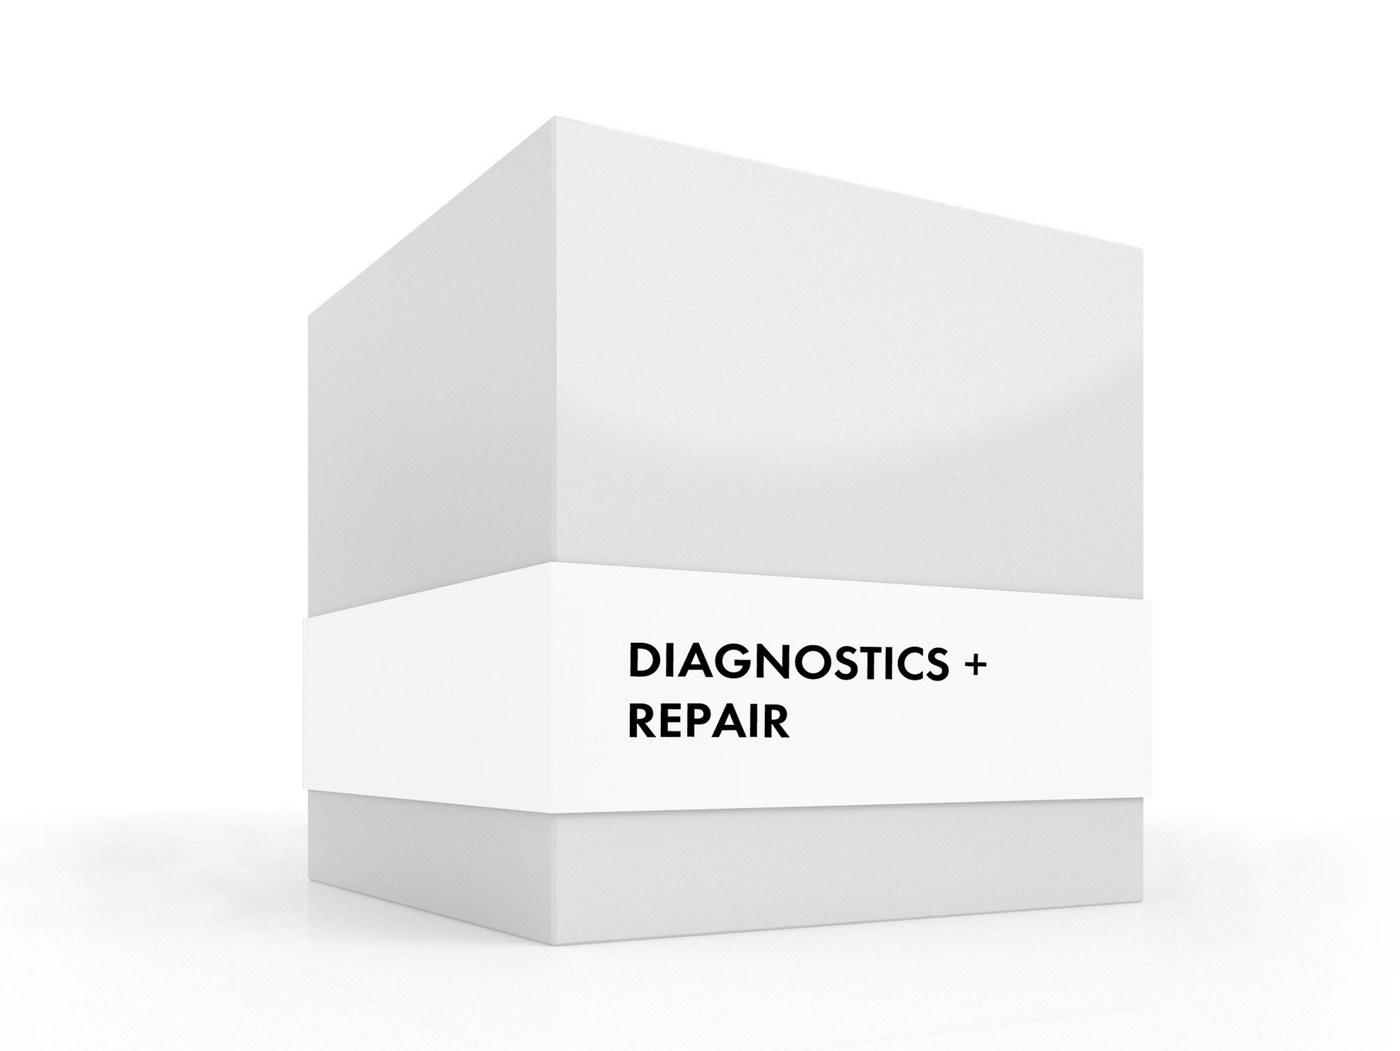 SMA Diagnostics + Repair